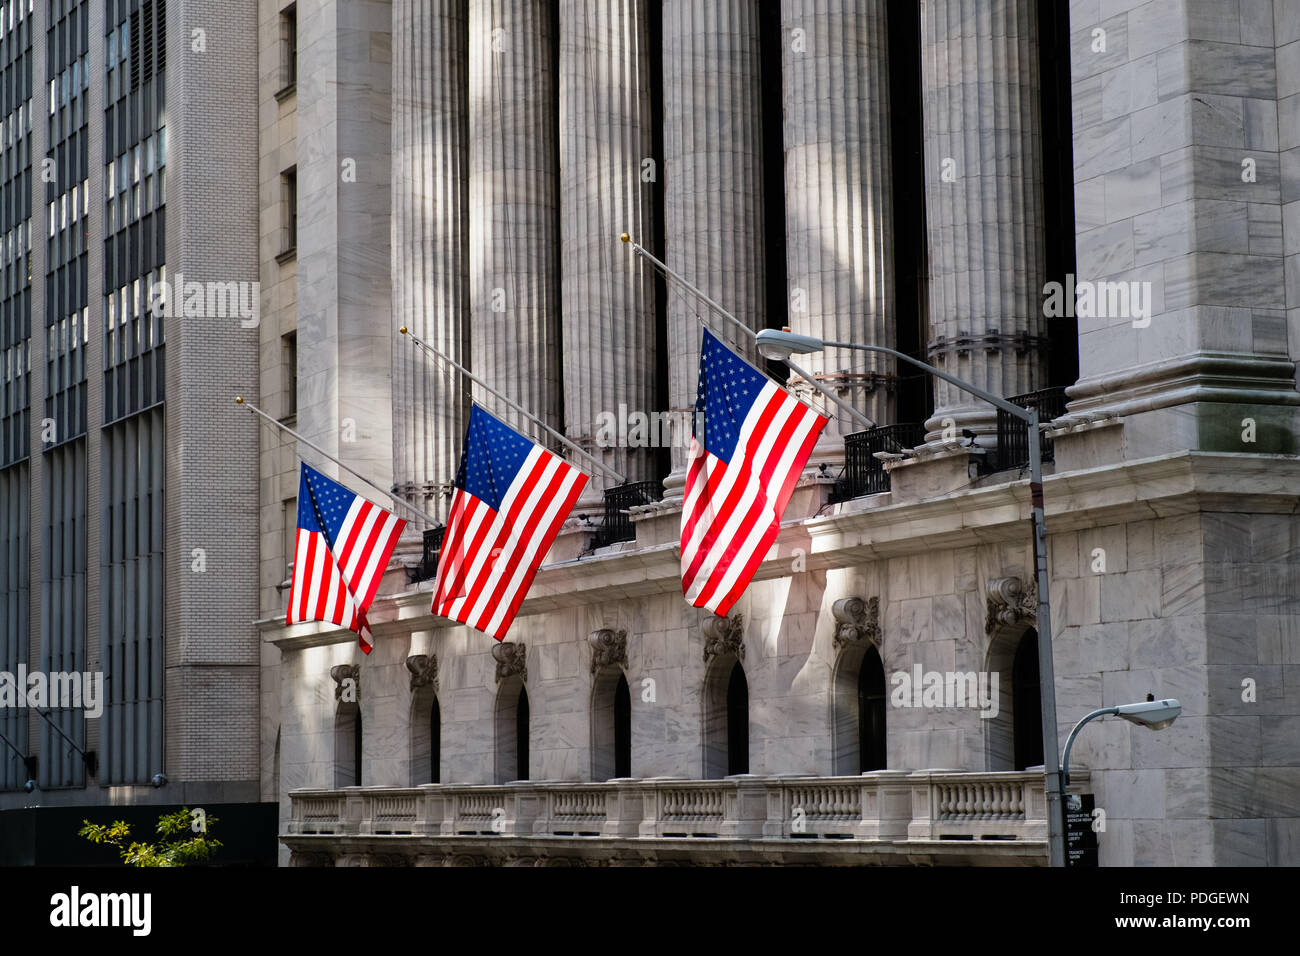 Backlit flags in front of the portico of New York Stock Exchange, Wall Street, Manhattan, New York City - Stock Image